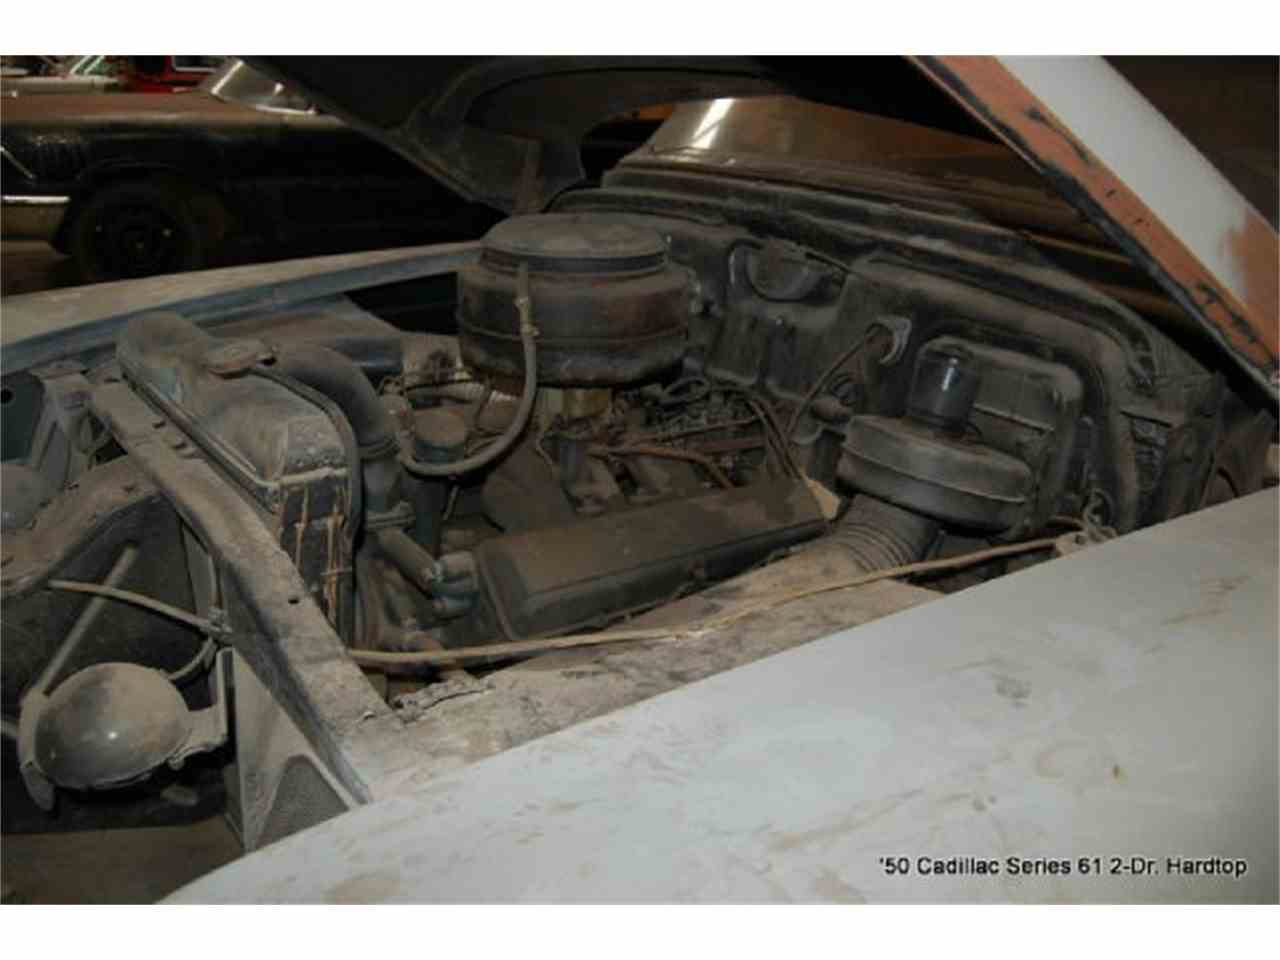 Large Picture of Classic 1950 Cadillac Series 61 Hardtop Project - $5,500.00 Offered by Brandon Classics - DDK3